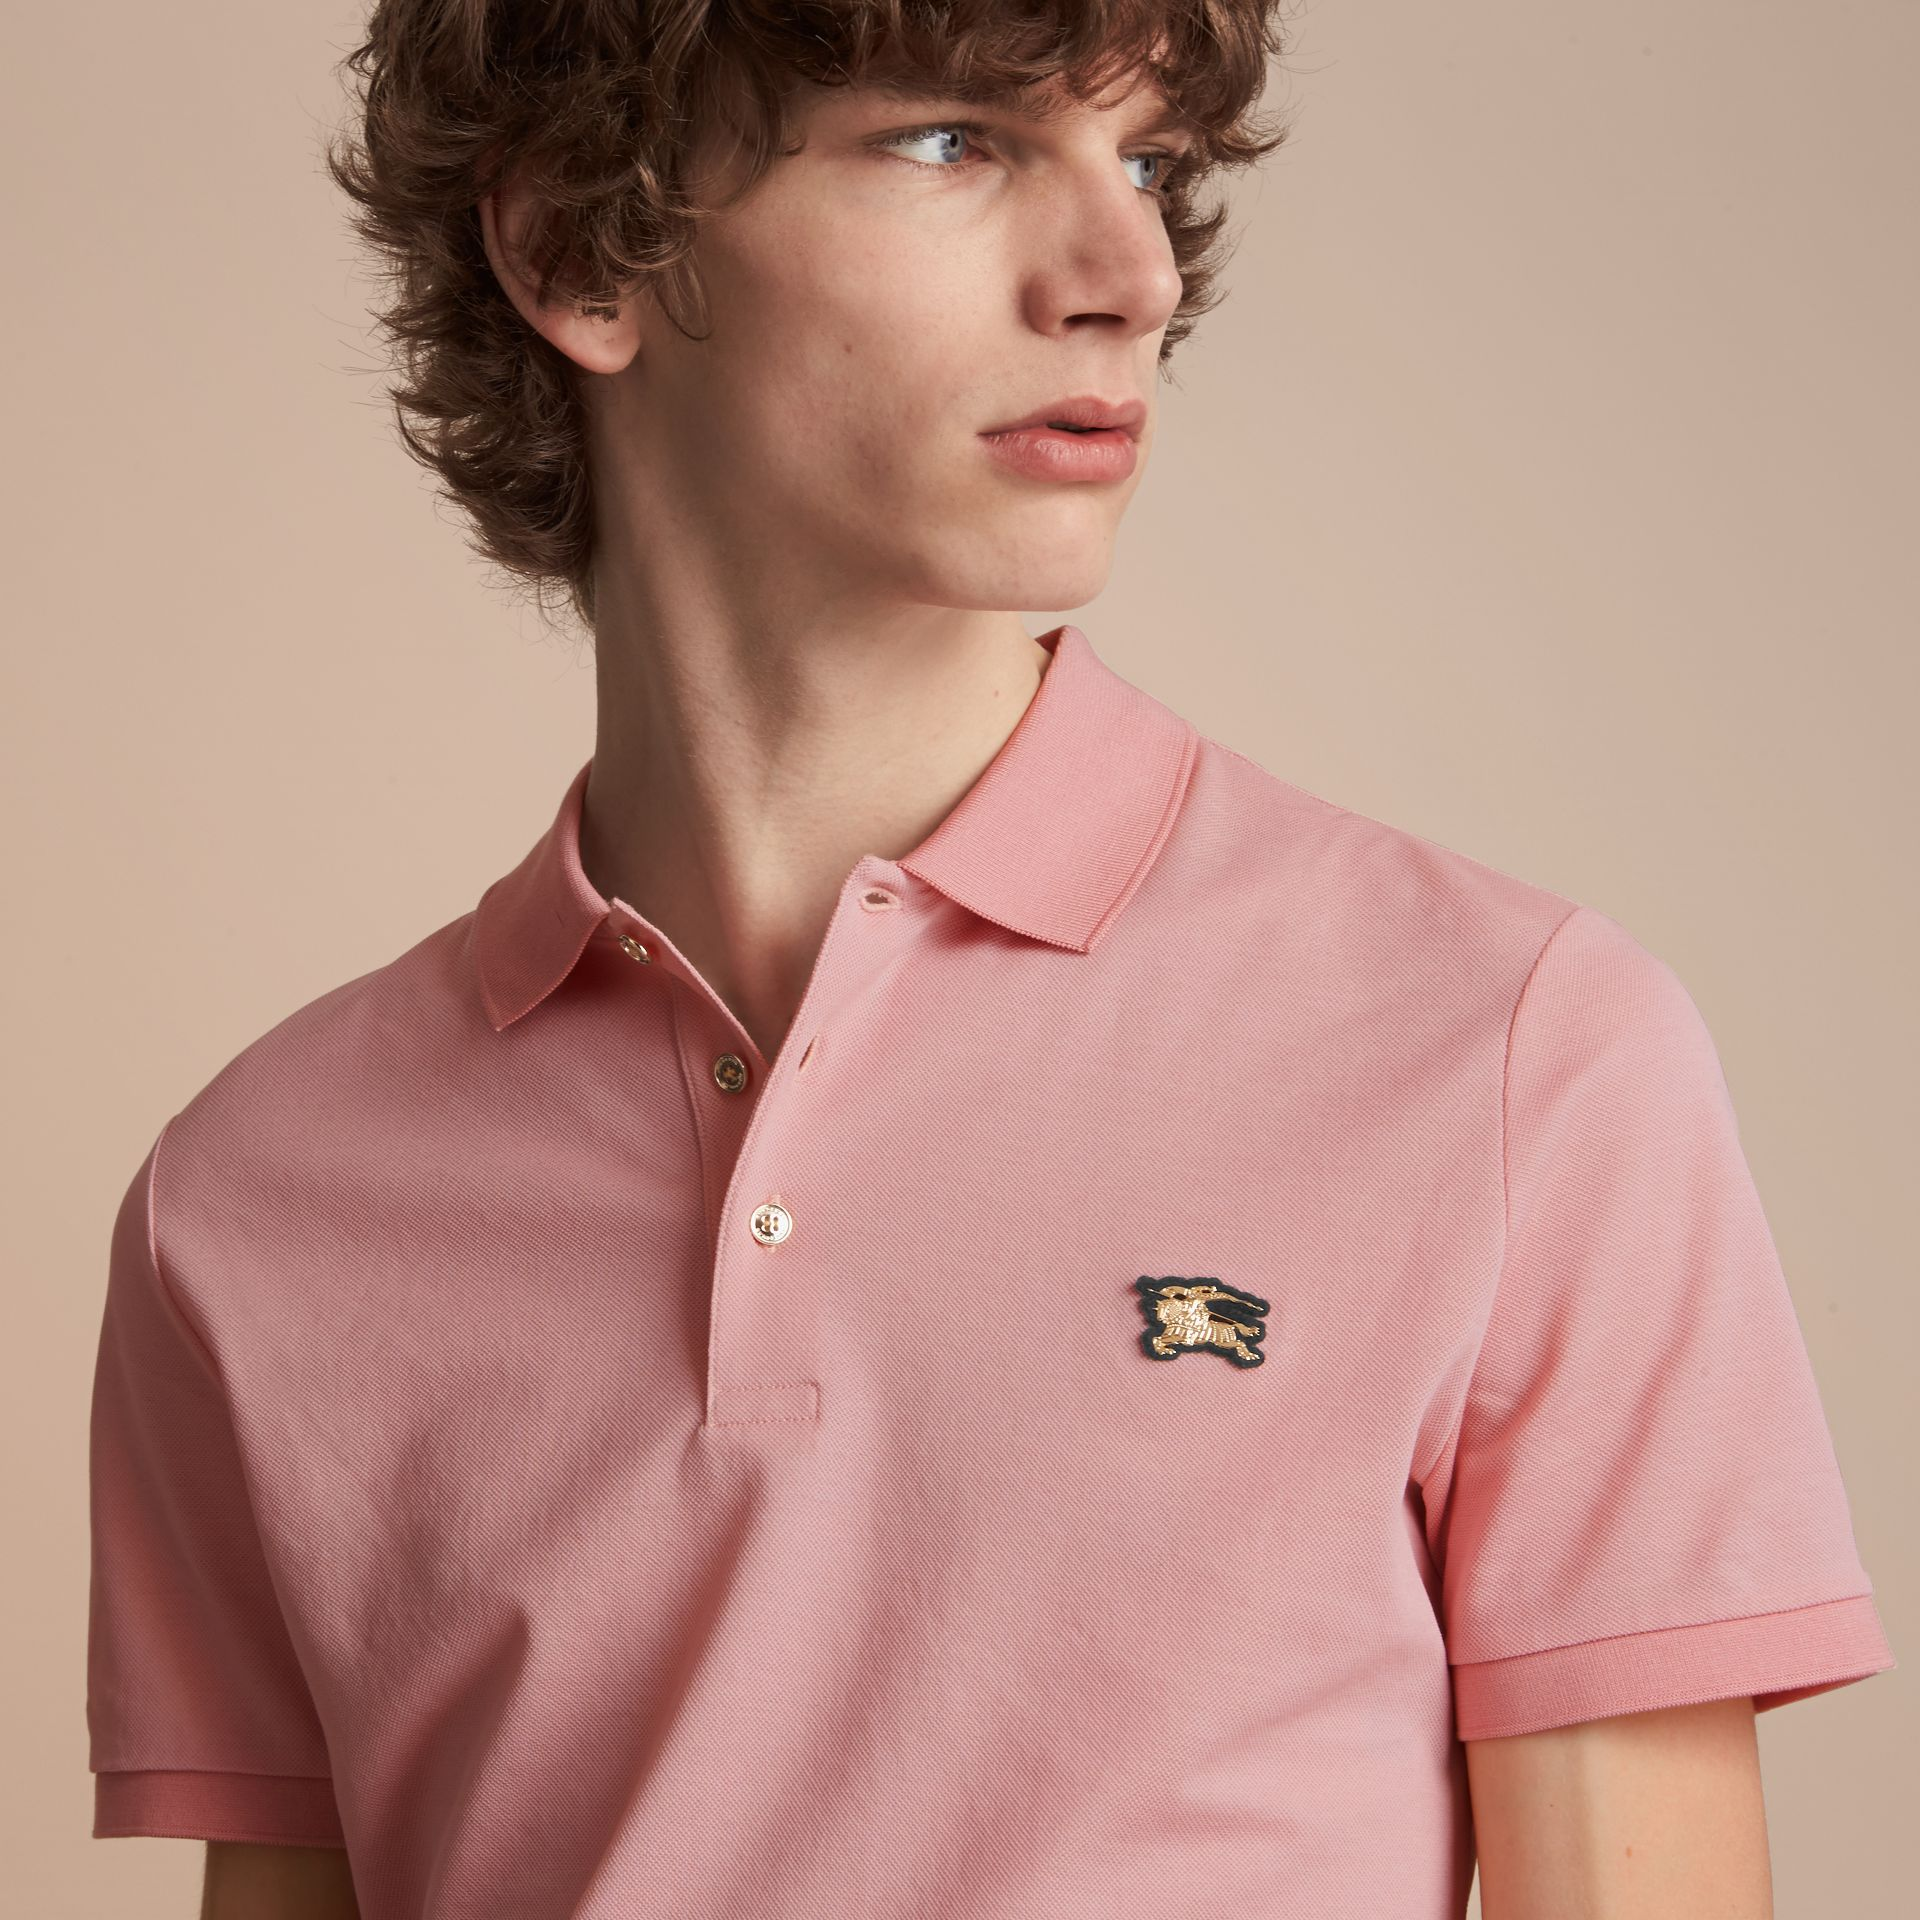 Cotton Piqué Polo Shirt in Chalk Pink - Men | Burberry Canada - gallery image 5